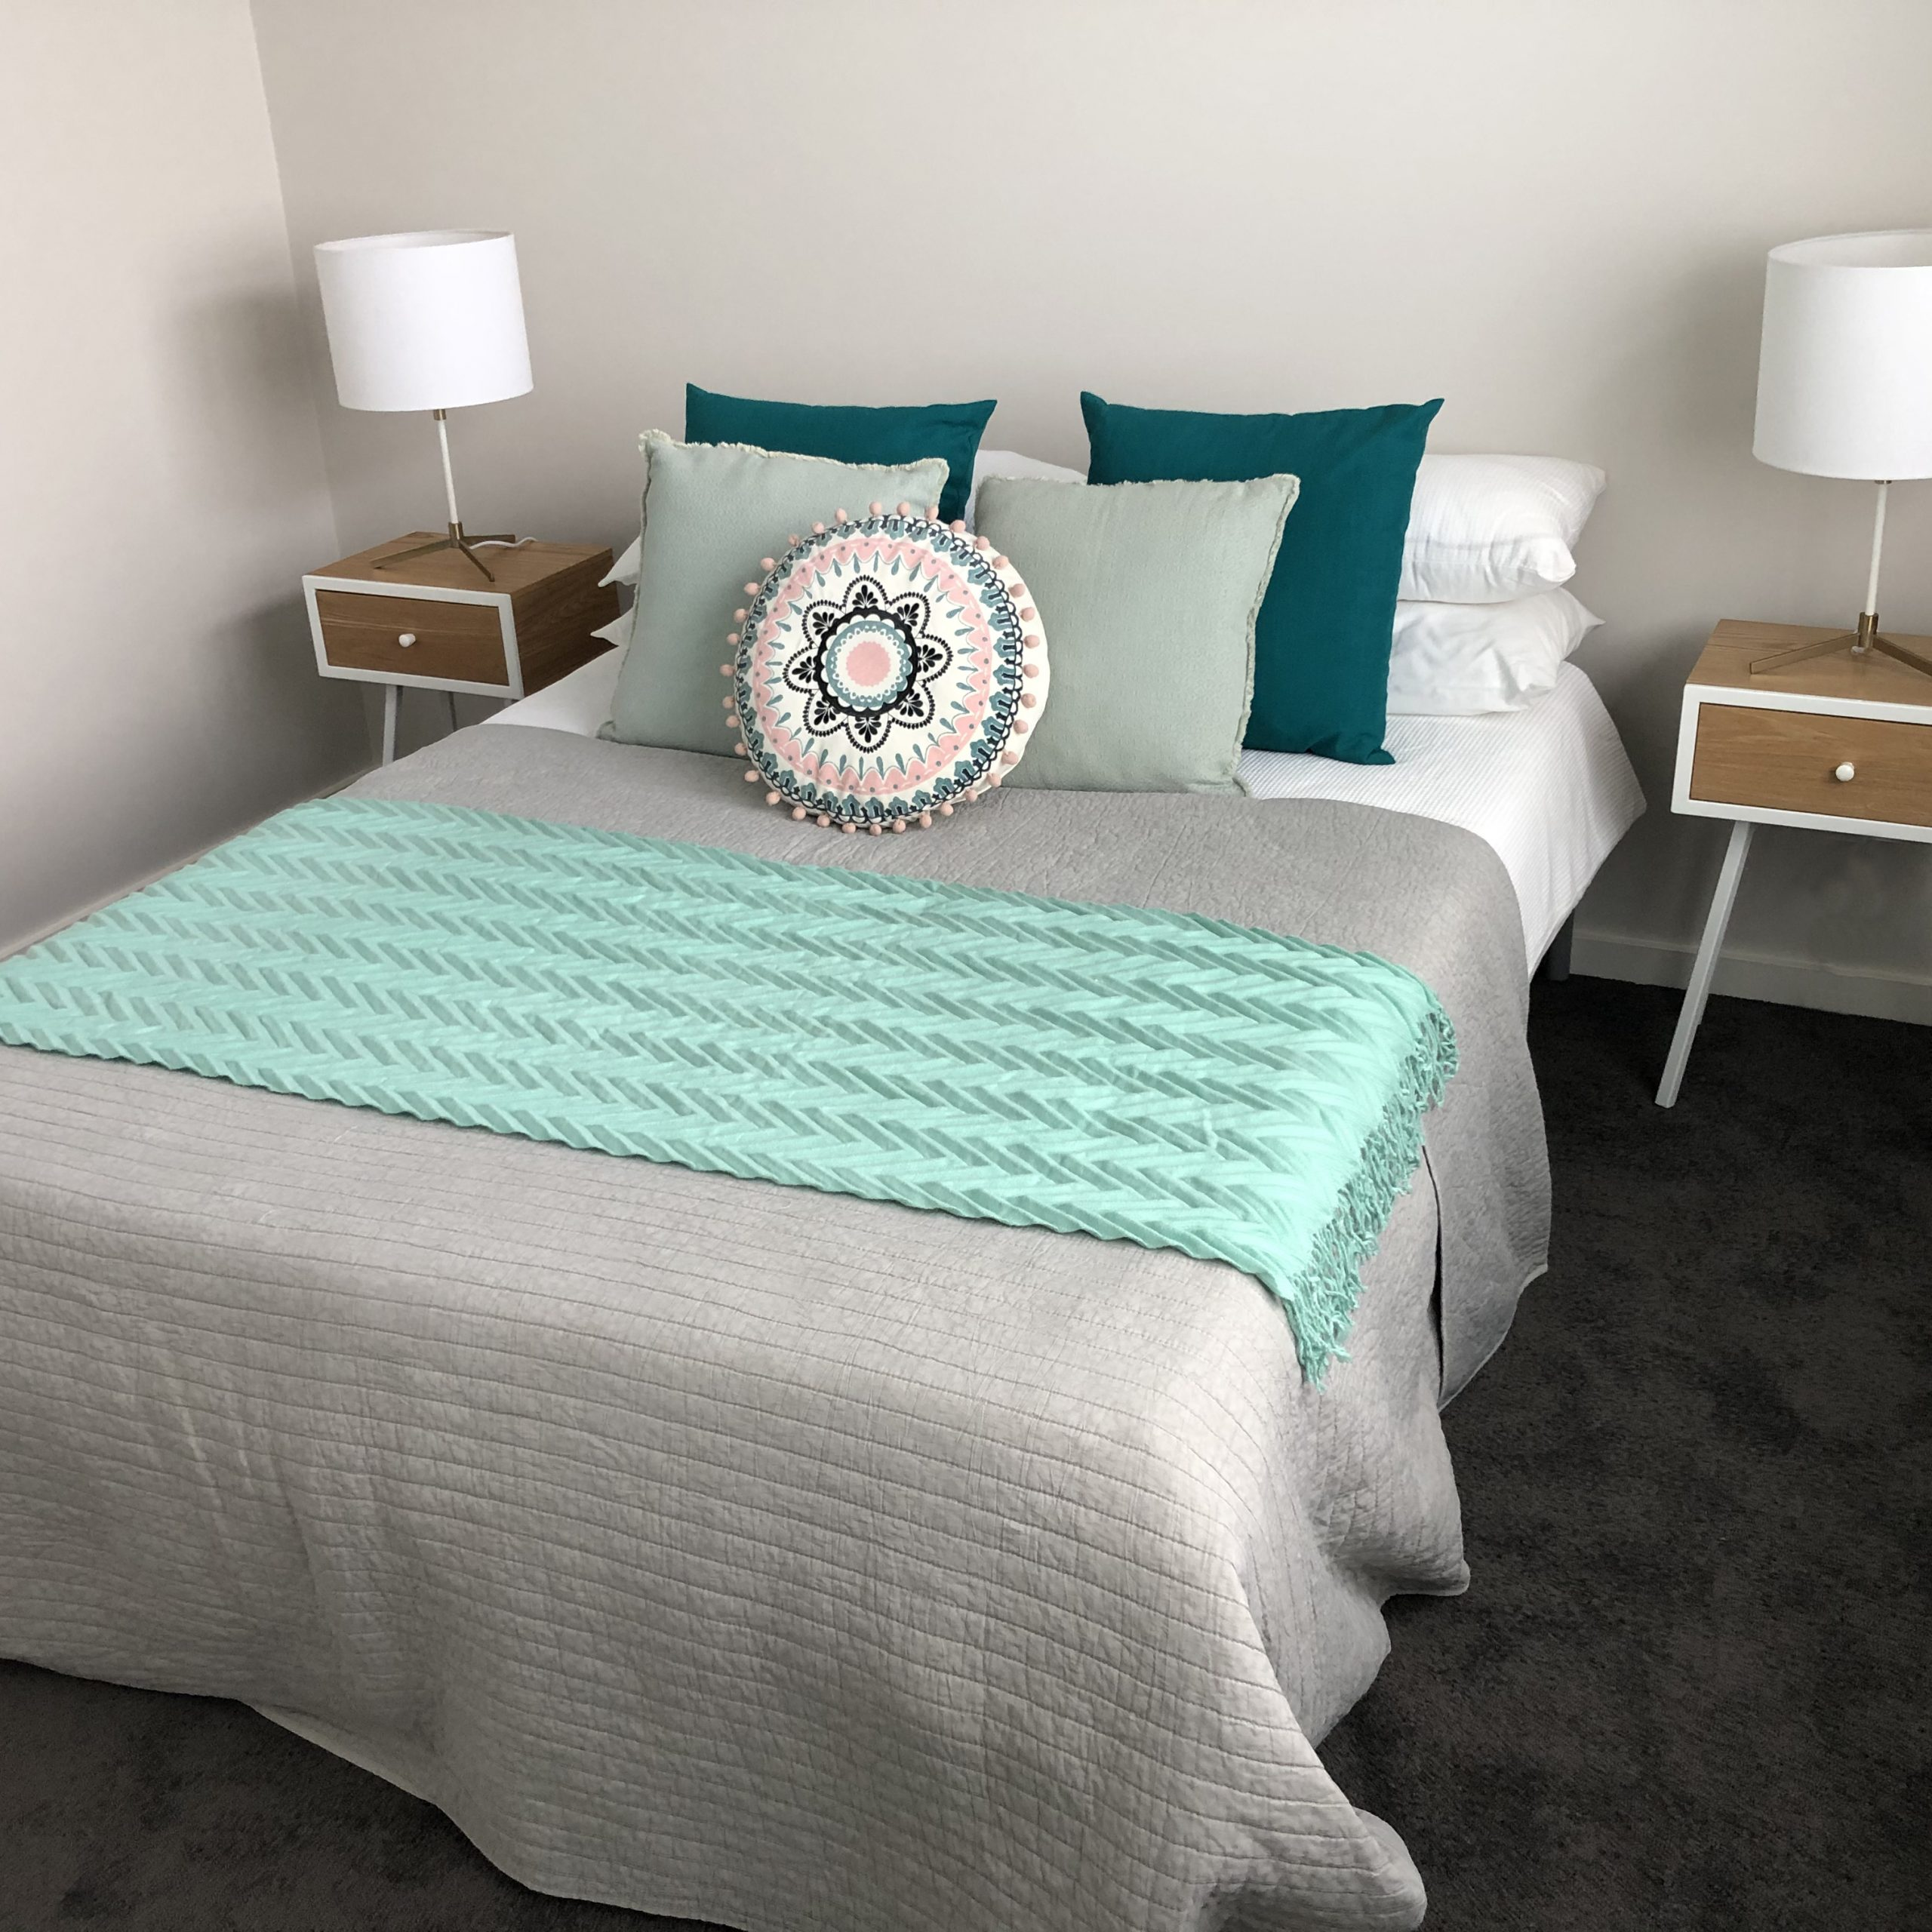 Styled bedroom with aqua accents